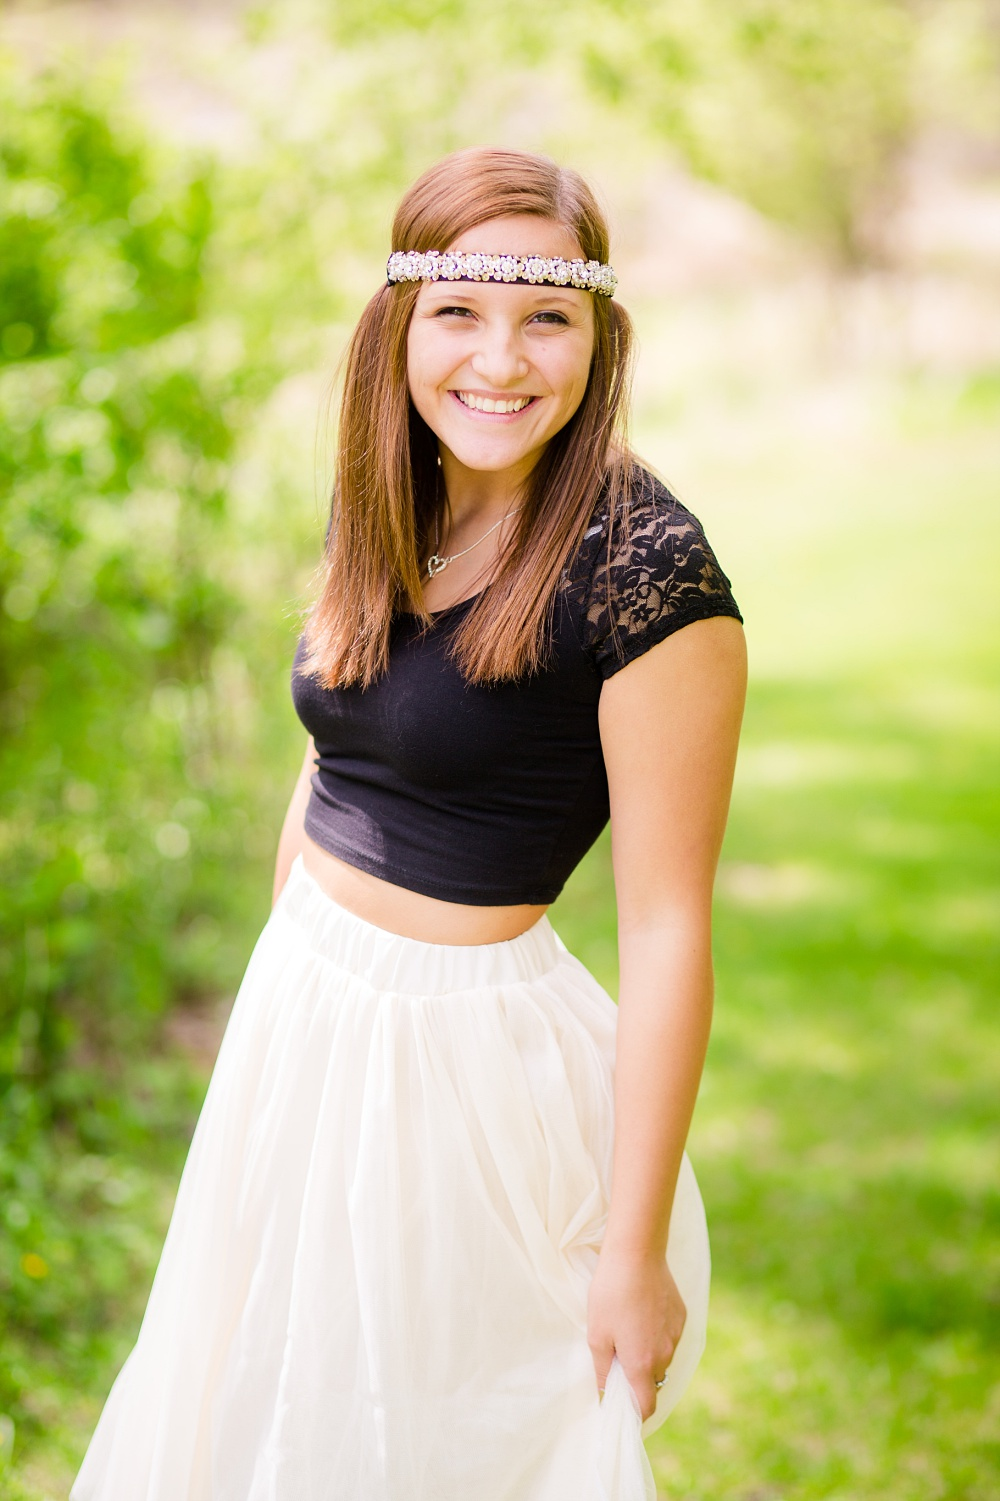 Outdoor Tulle Skirt Inspired Senior Session | Amber Langerud Photography